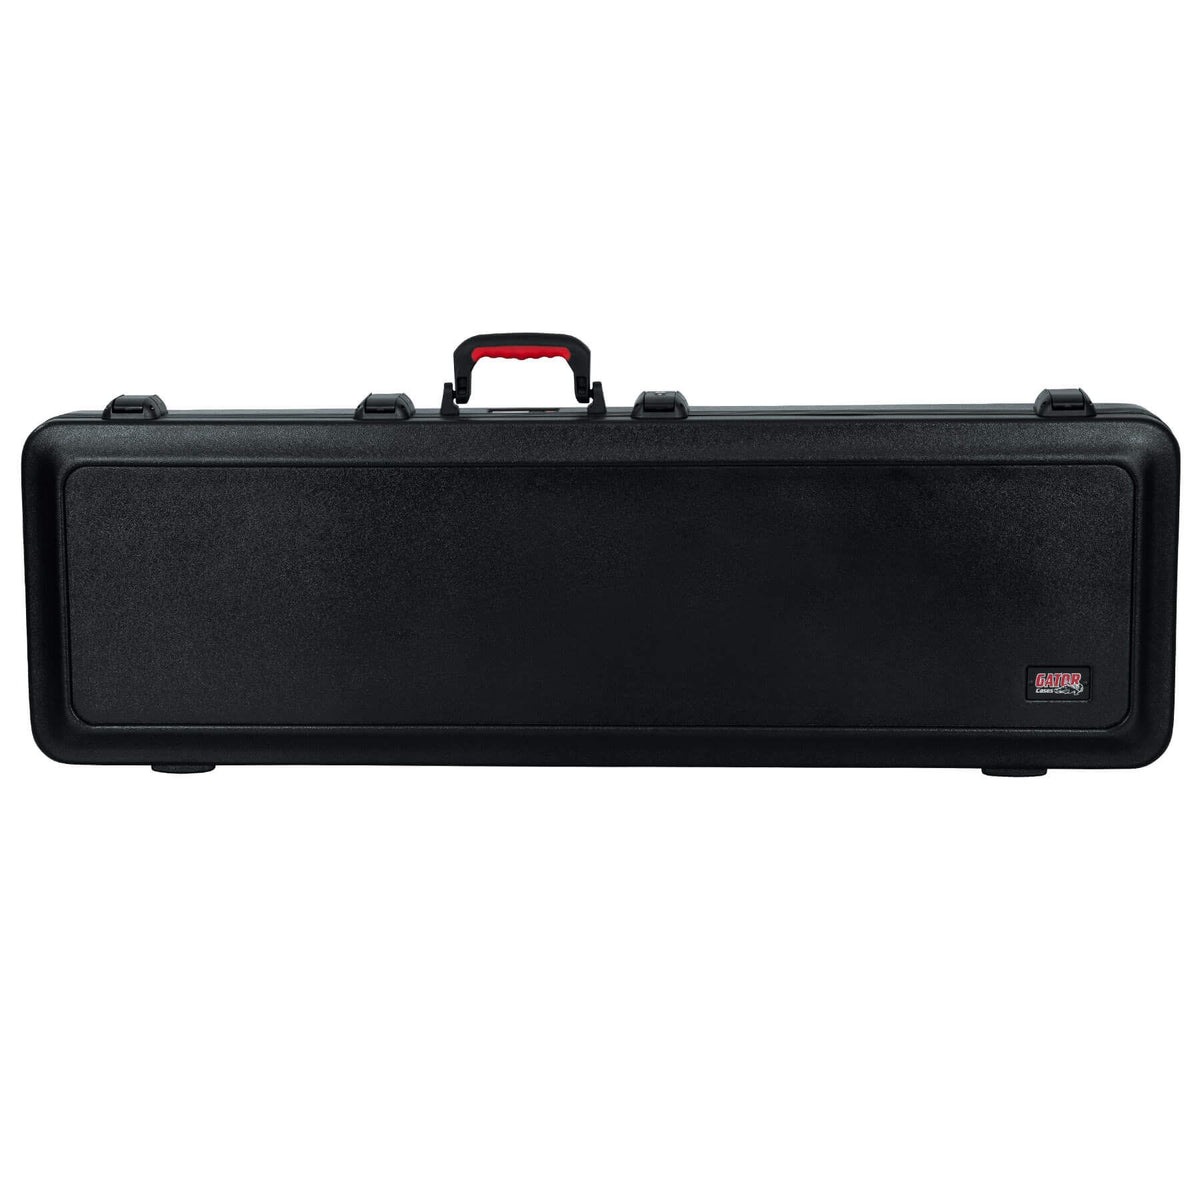 Gator ATA Bass Guitar Case fits Fender Aerodyne Jazz Bass